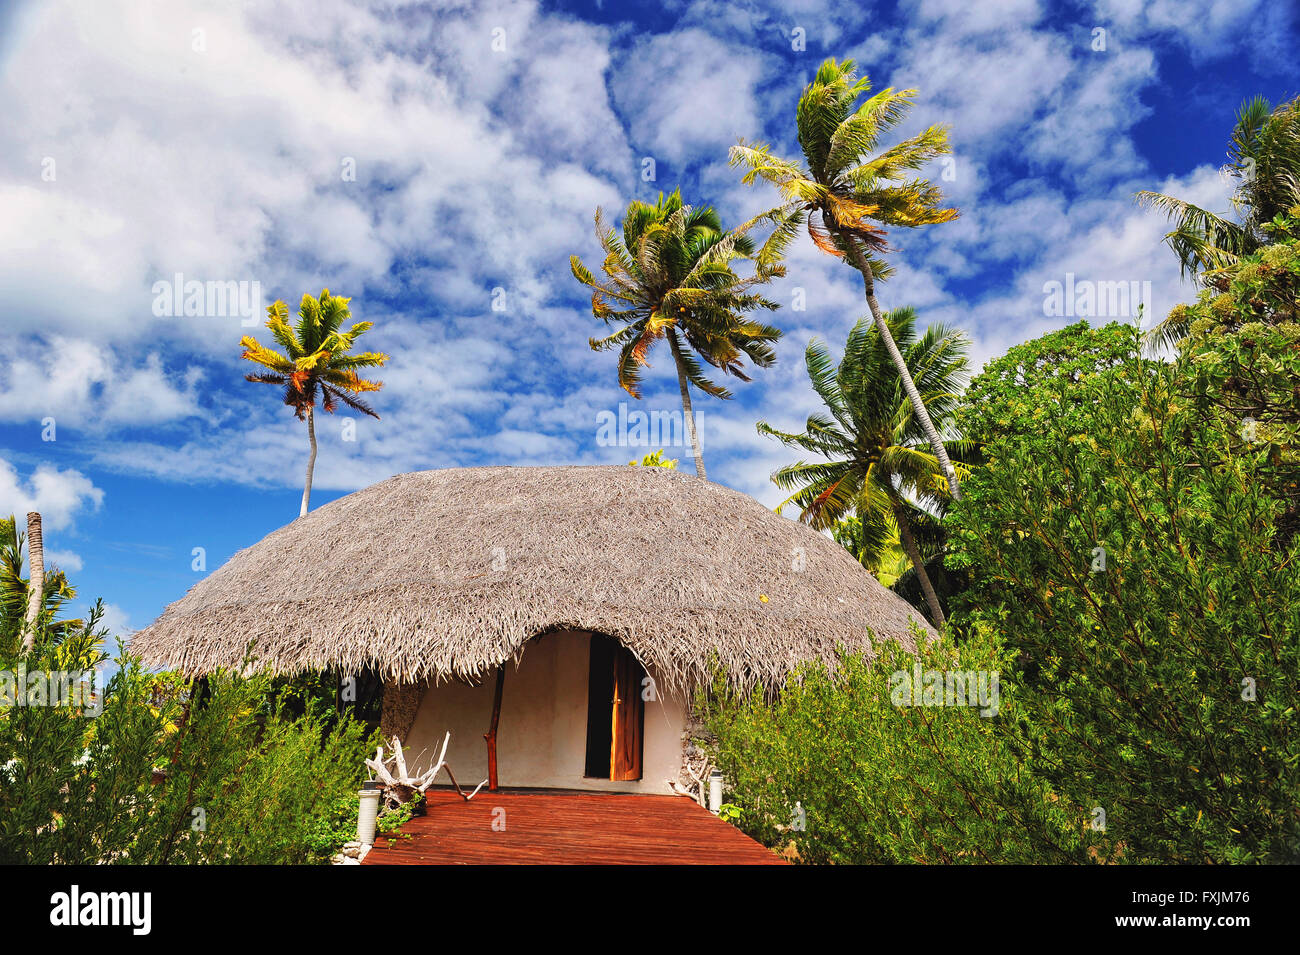 Tikehau, atoll of Tuamotu Islands, Polynesia. An echo resort in the midst of green palm trees with a beautiful postcard - Stock Image